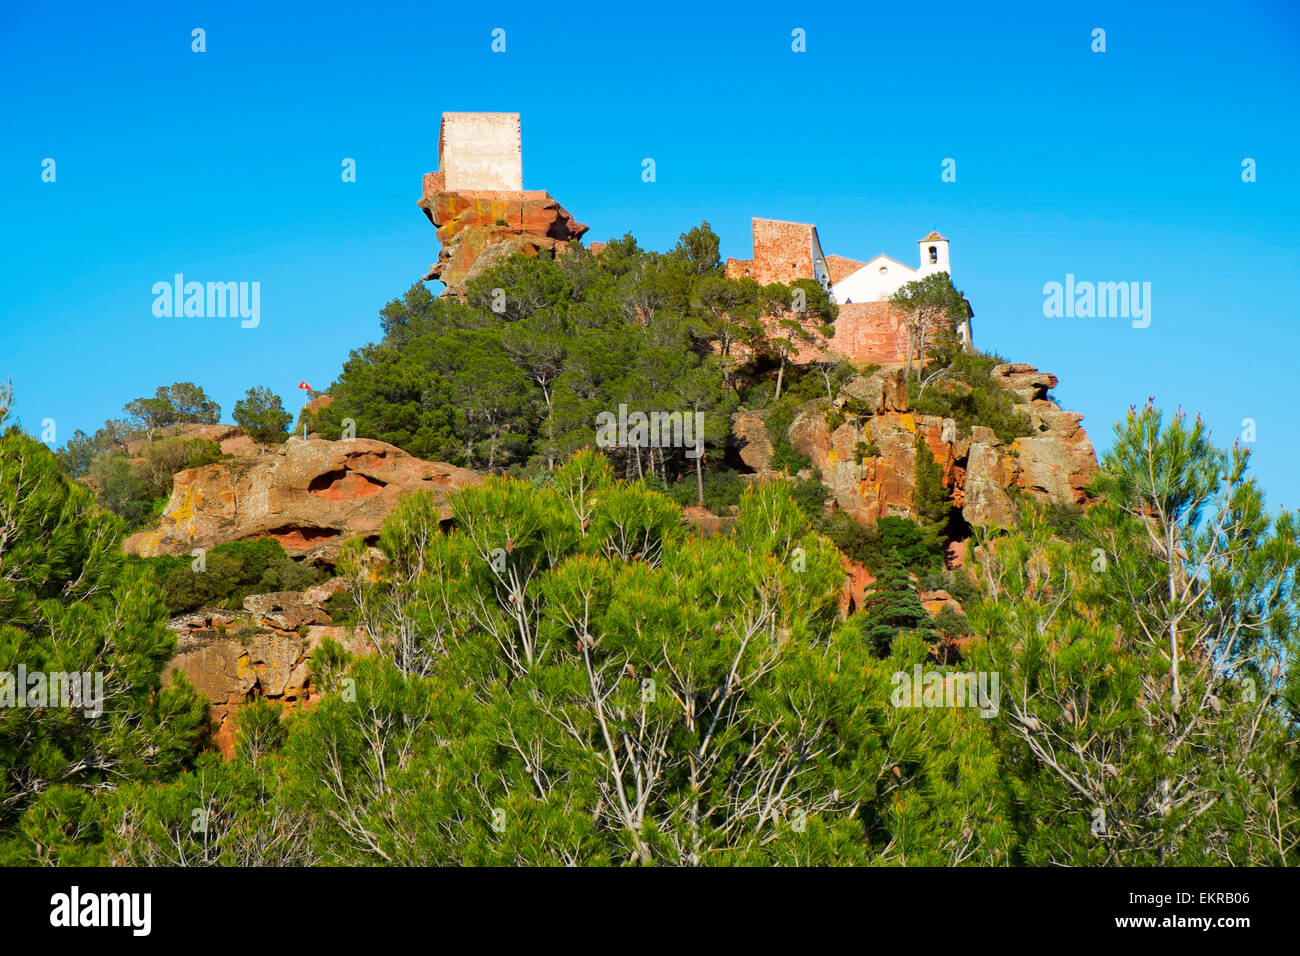 view of the Shrine of Mare de Deu de la Roca, in the top of a hill, in Mont-roig del Camp, Catalonia, Spain - Stock Image